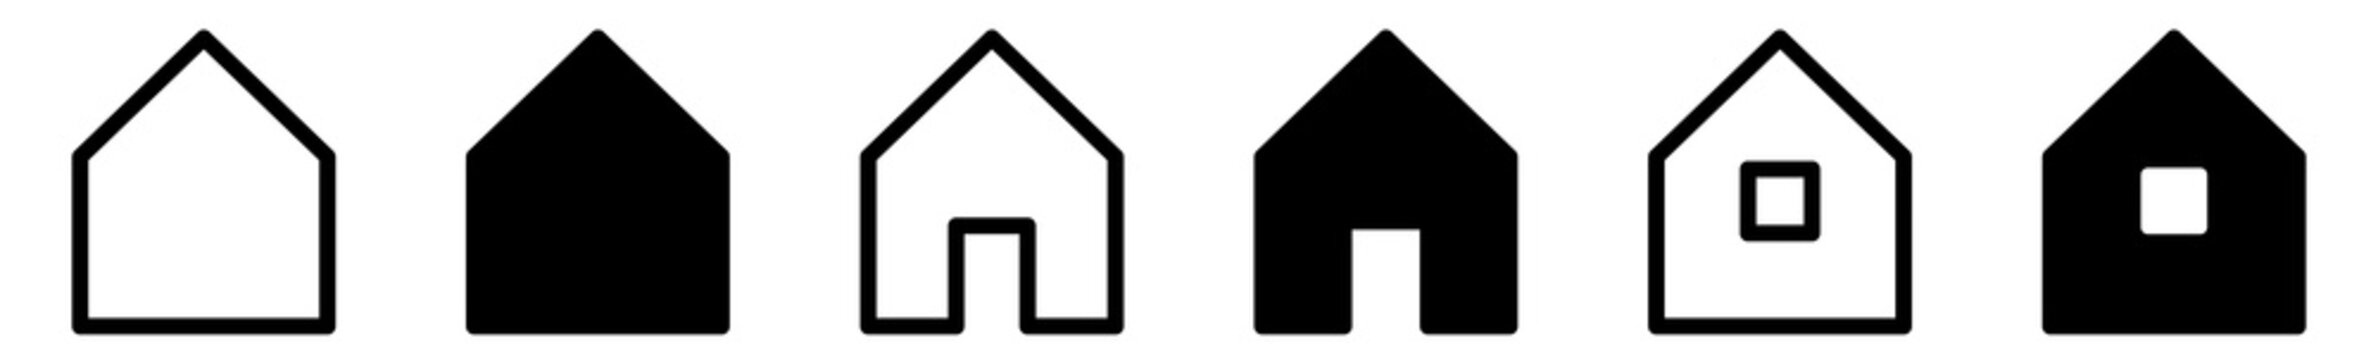 House Icon Black | Home Illustration | Real Estate Symbol | Building Logo | Tiny Houses Sign | Isolated | Variations